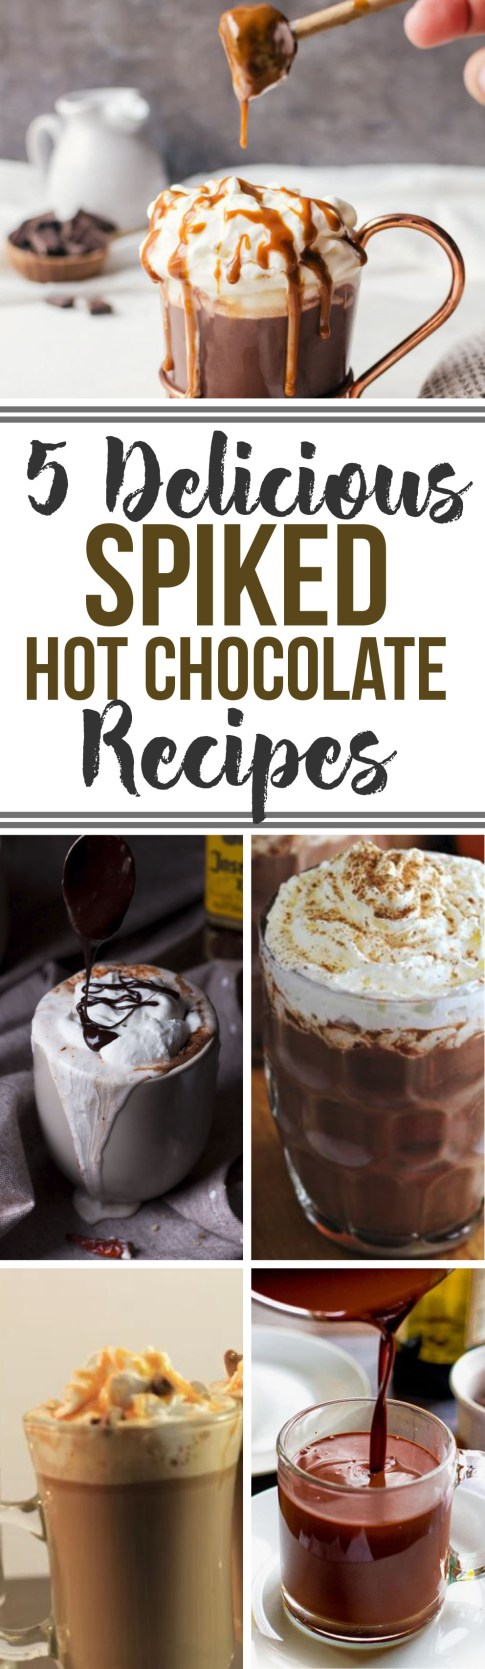 These are the most delicious spiked hot chocolate recipes!